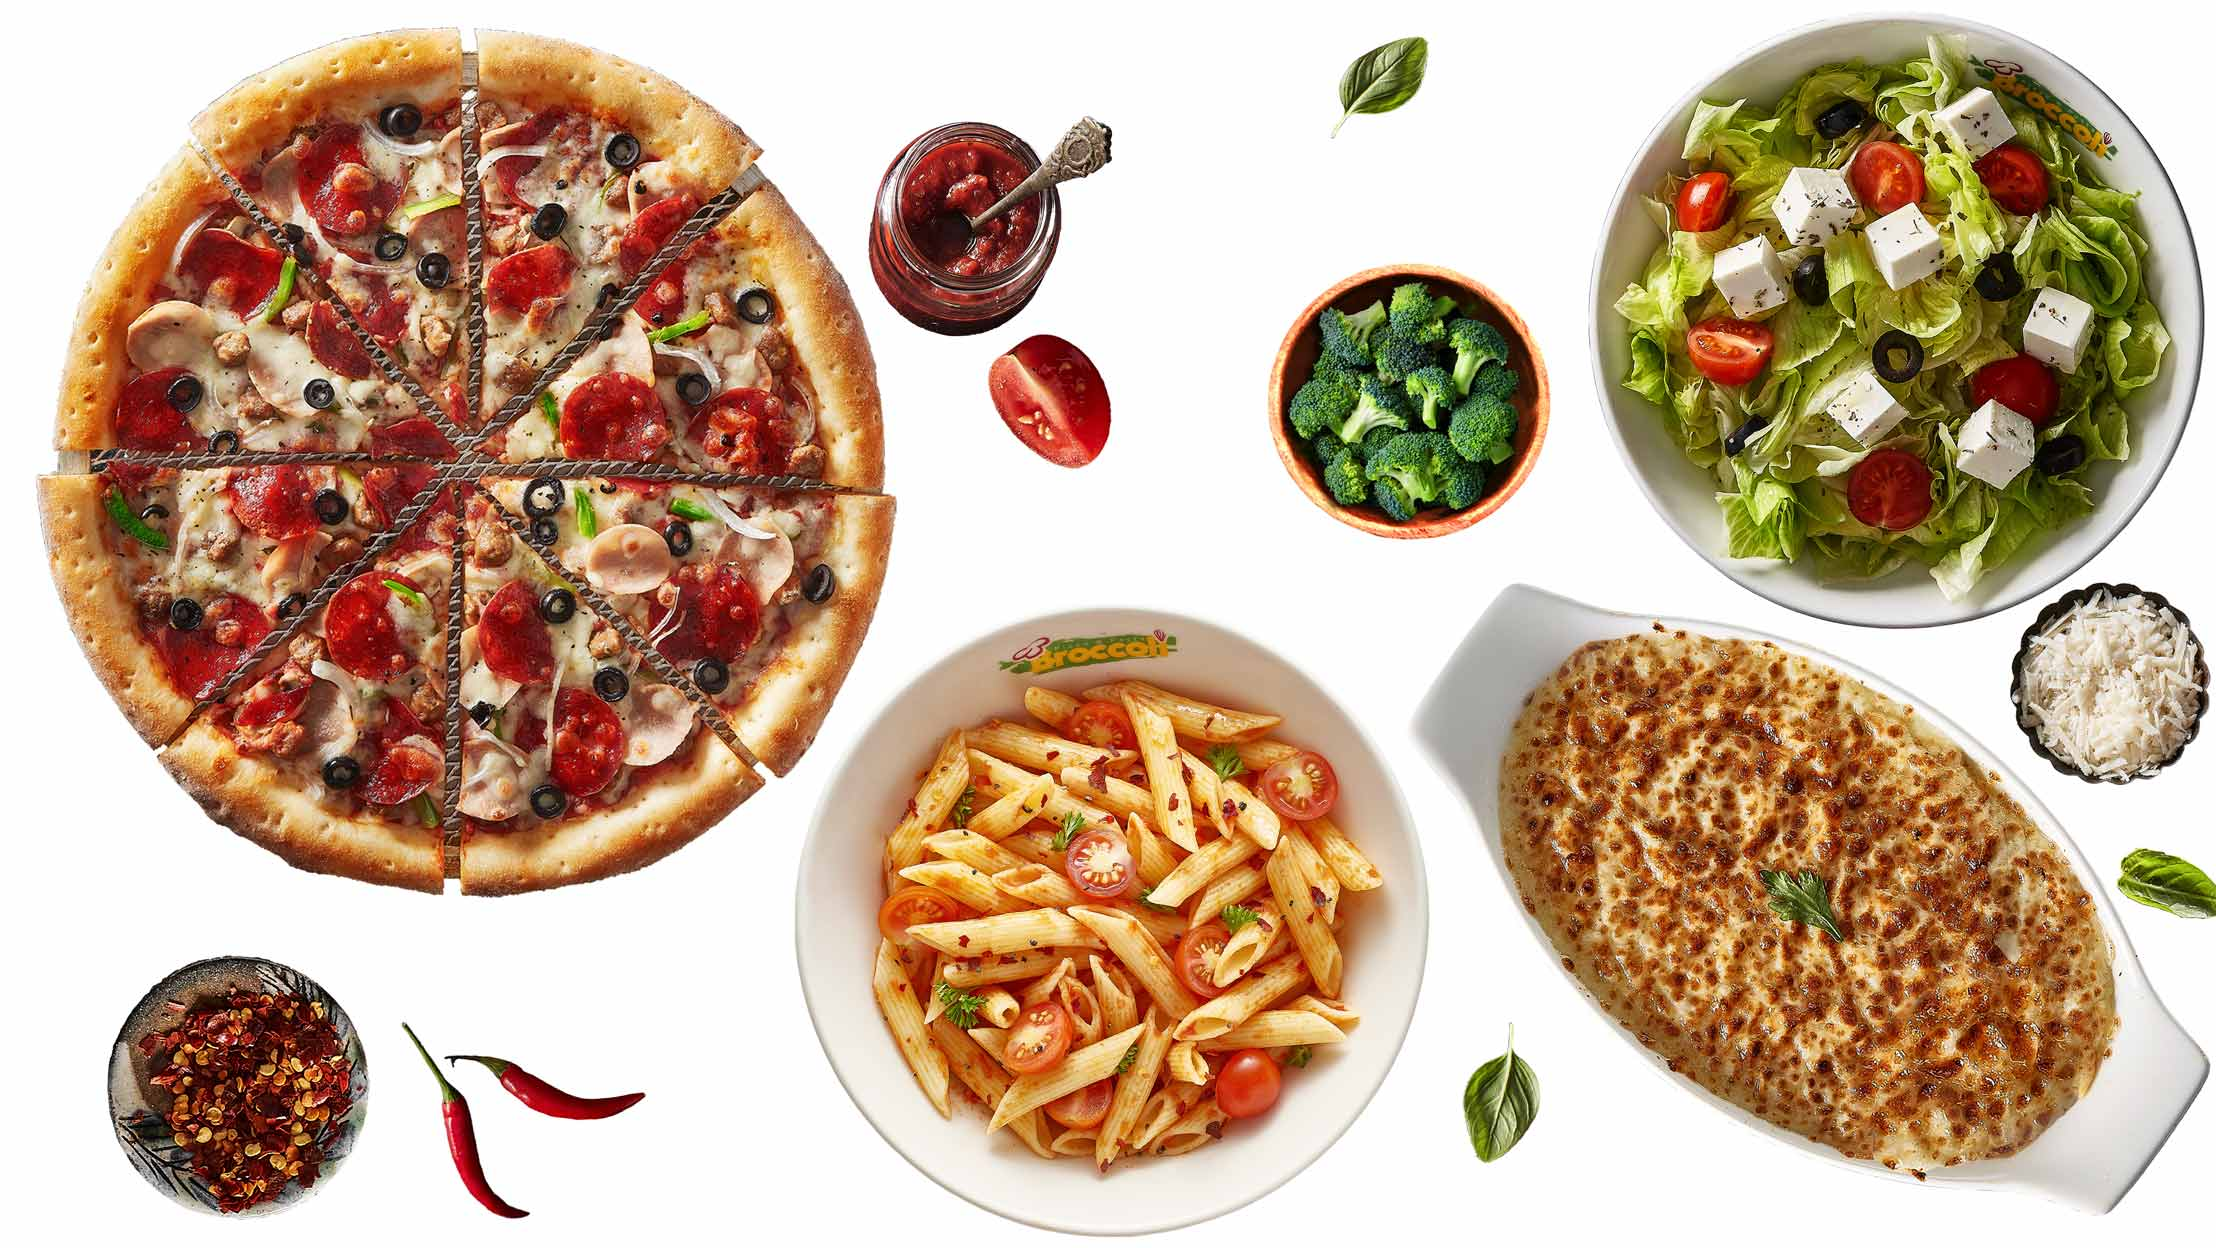 Broccoli Pizza and Pasta Products